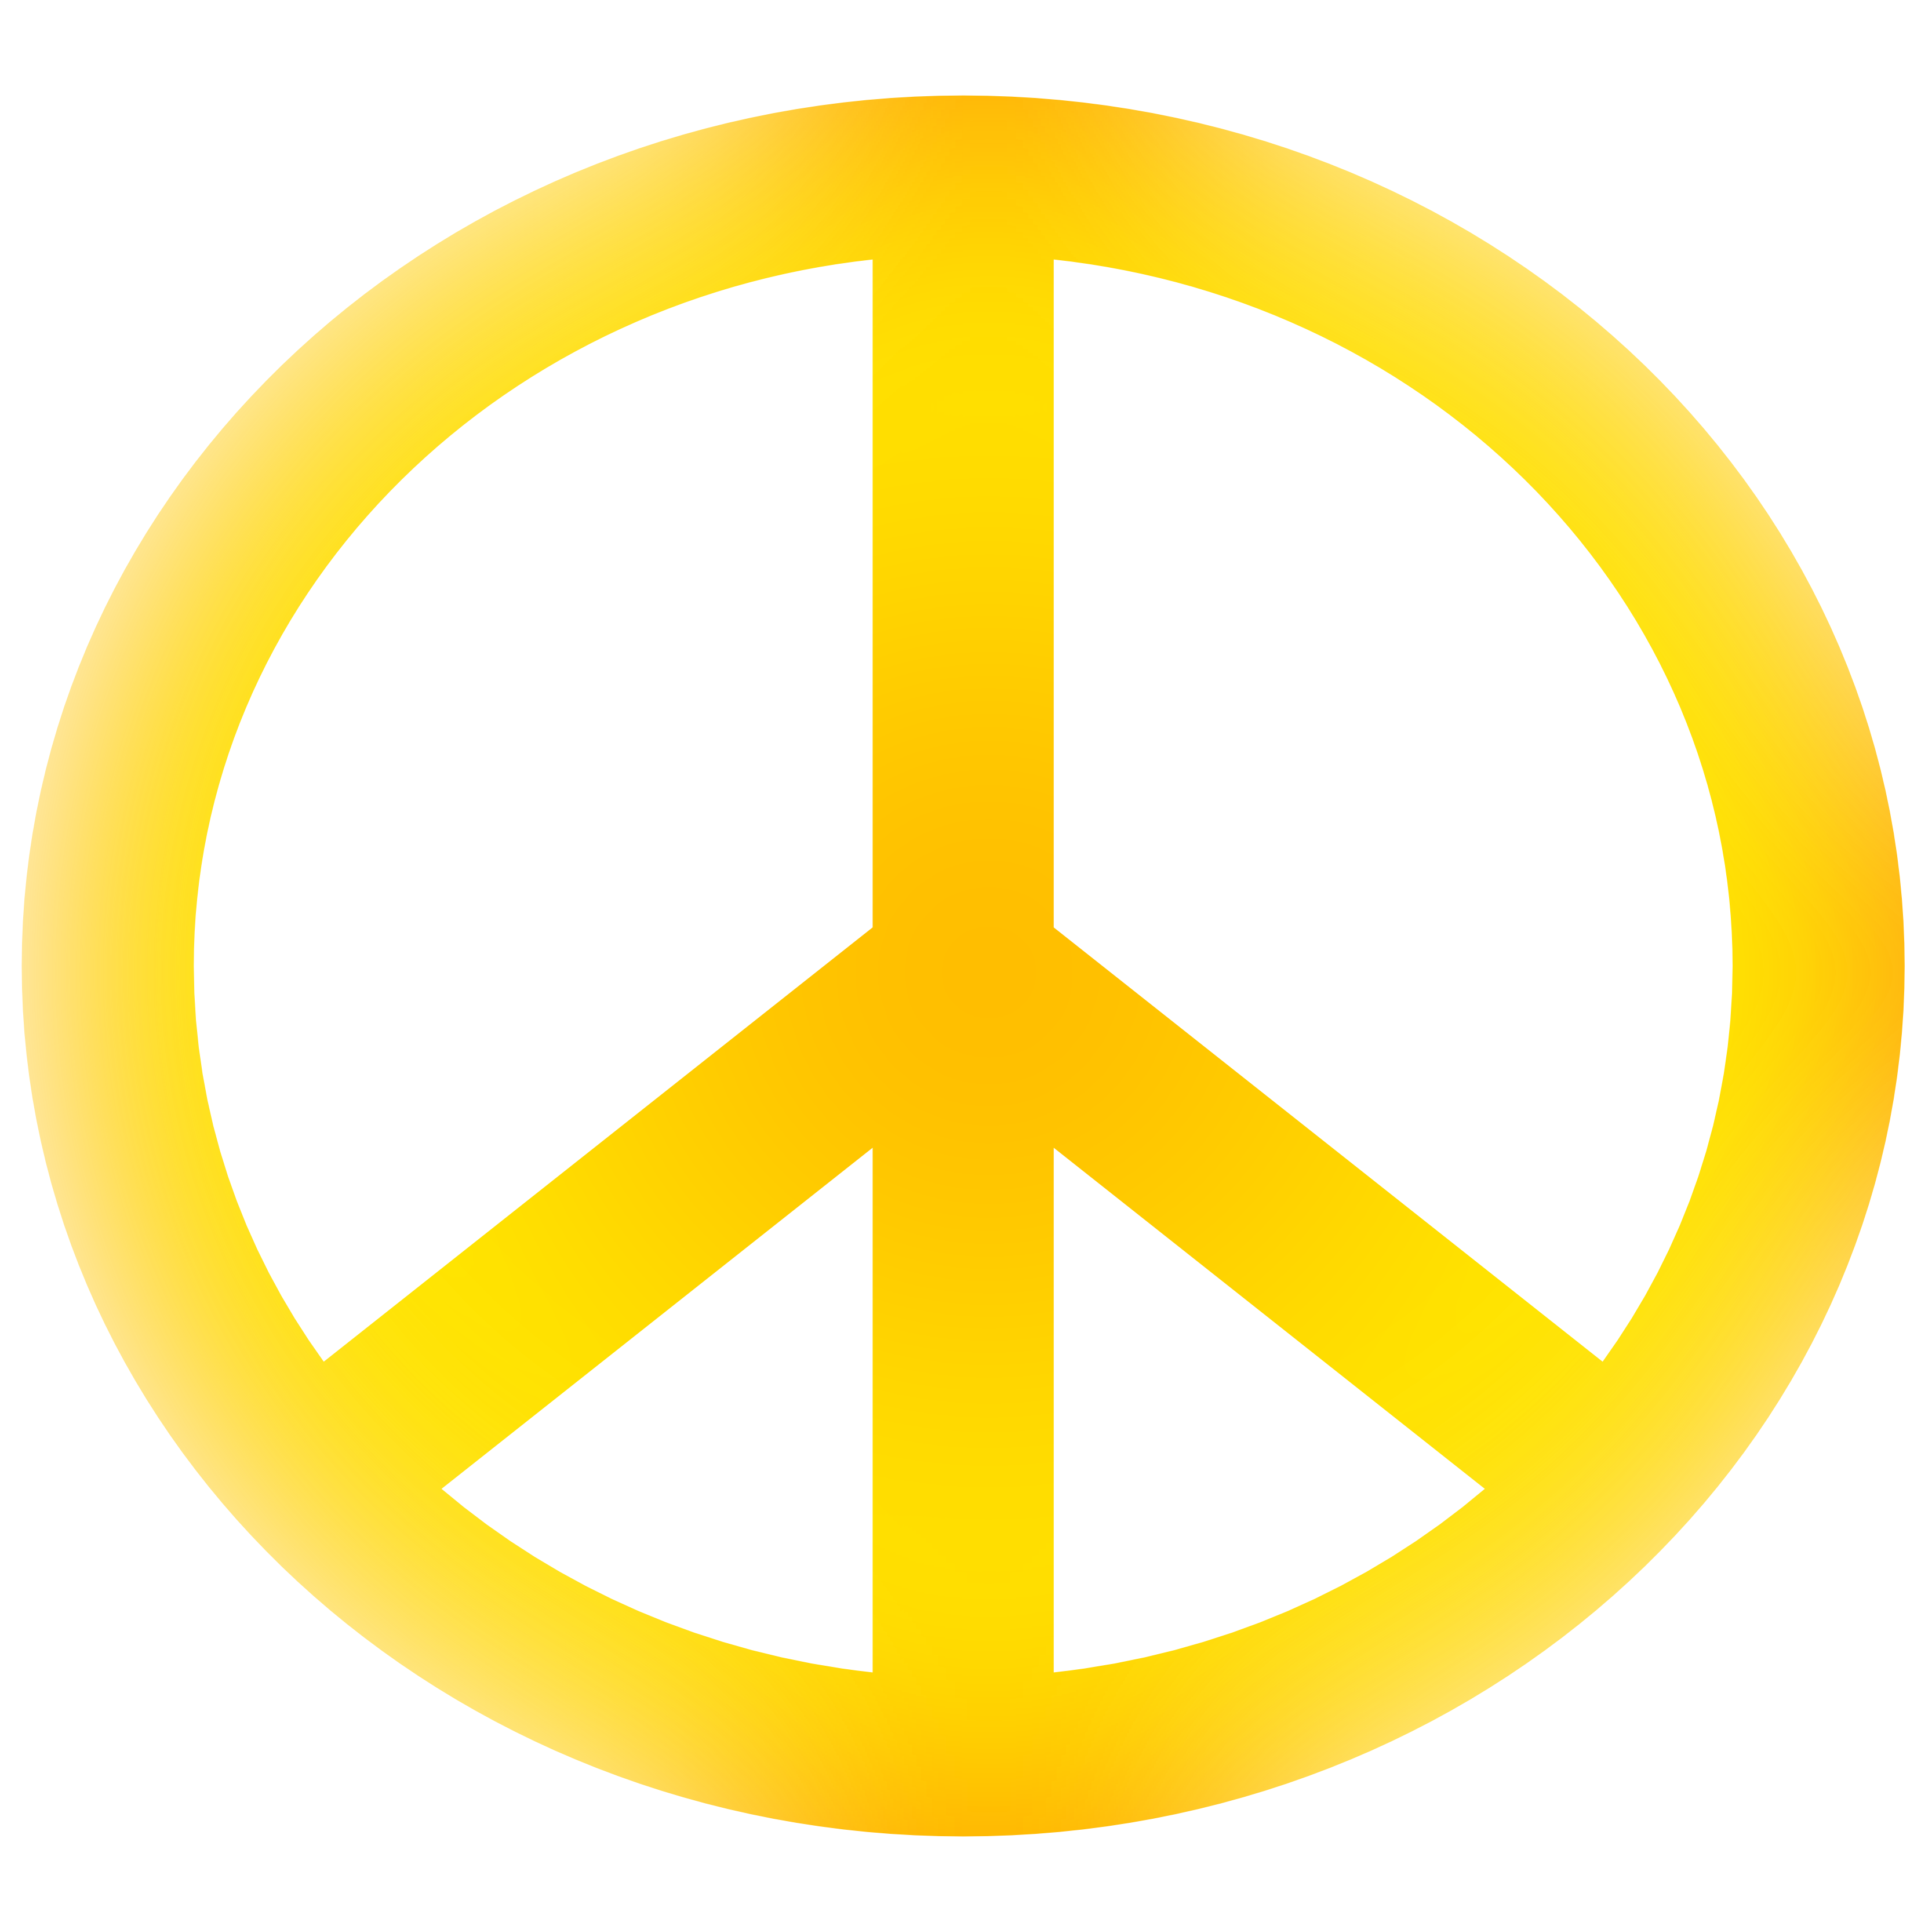 Peace Sign Clip Art | Clipart Panda - Free Clipart Images